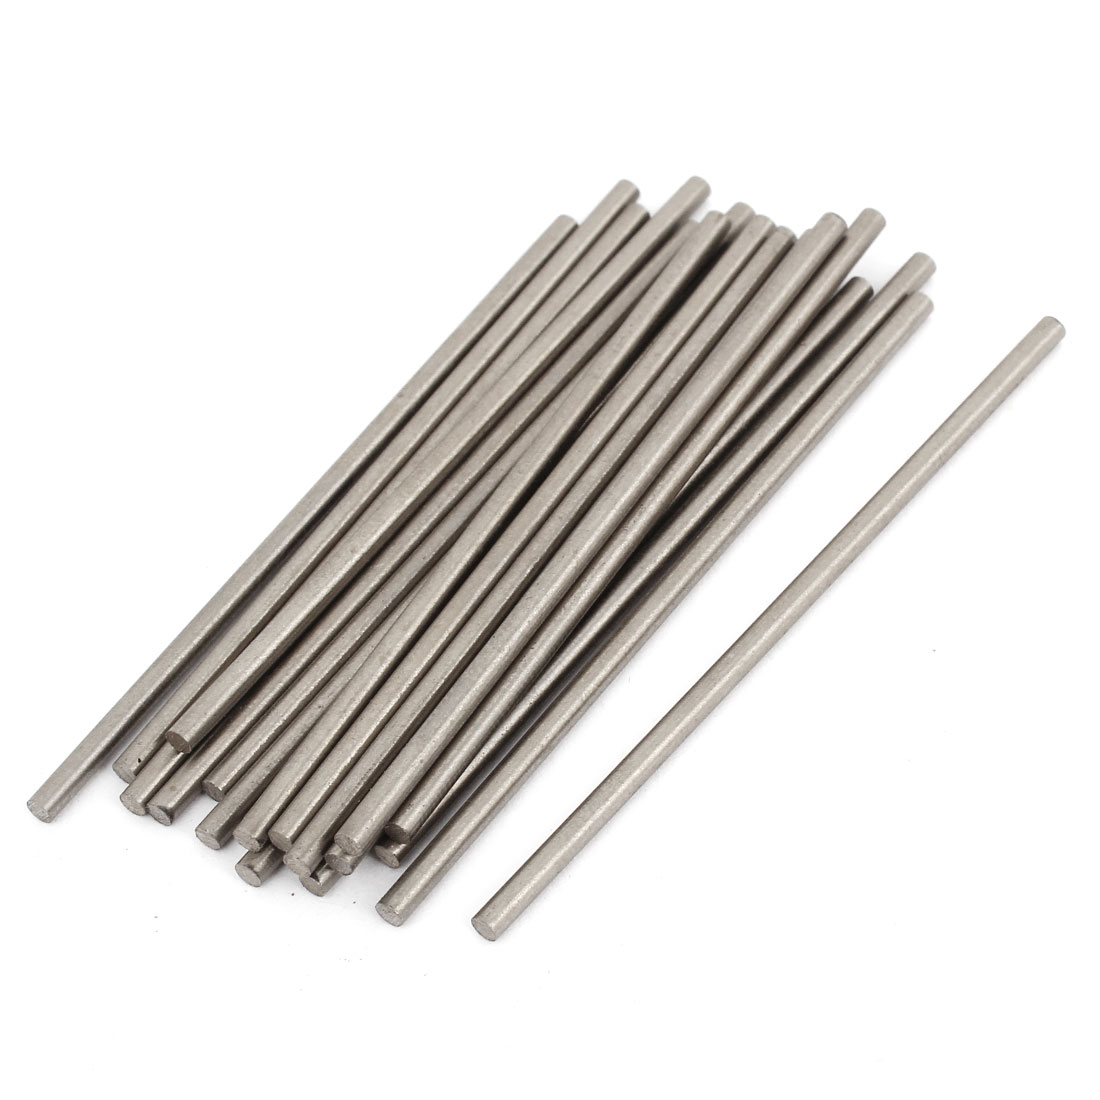 20pcs HSS High Speed Steel Round Turning Lathe Bars 2mm x 60mm